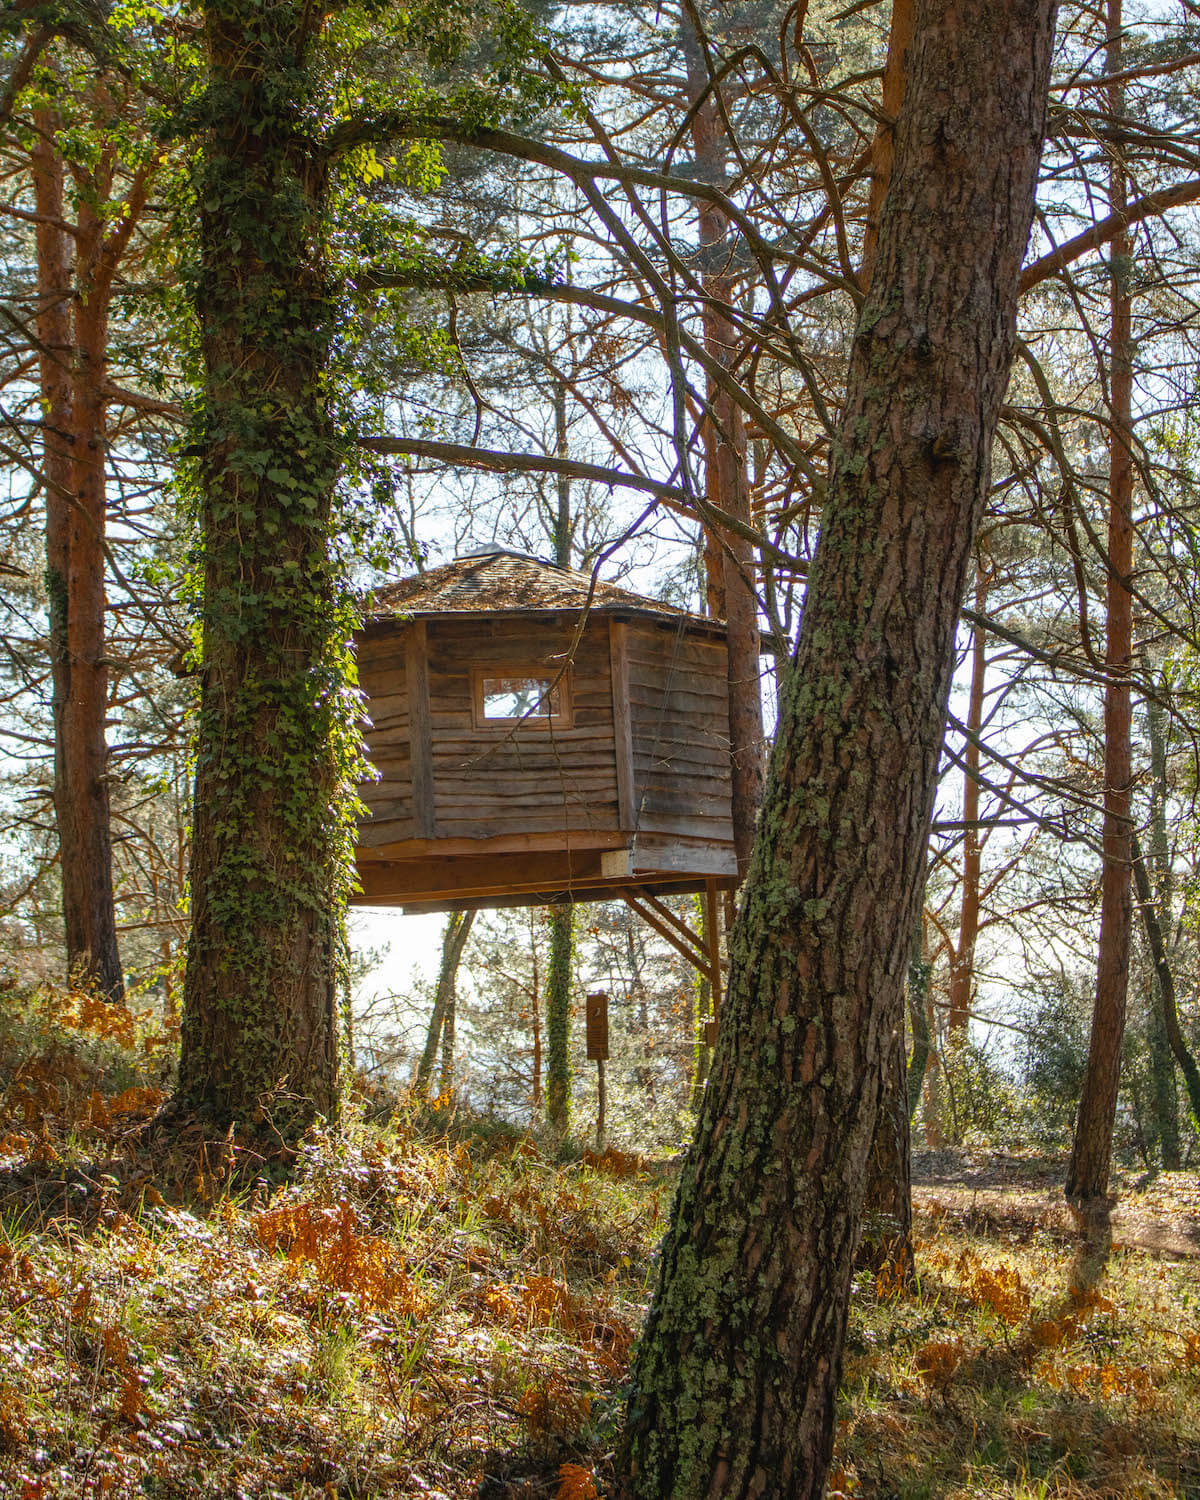 Staying at Cabanes als arbres, treehouse in Catalunya